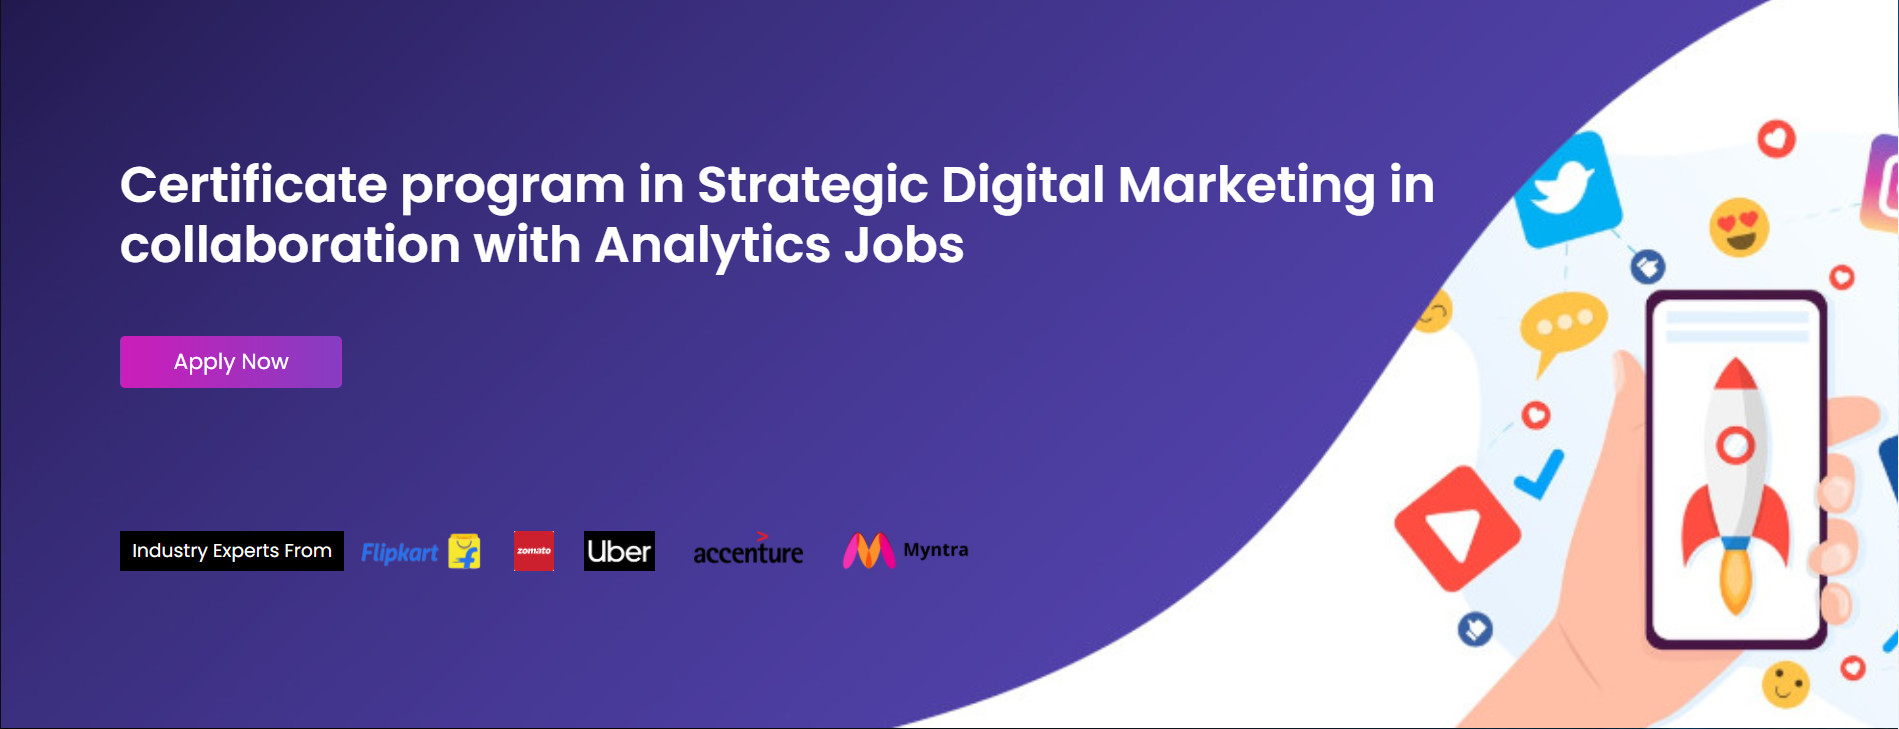 Certificate program in Strategic Digital Marketing in collaboration with Analytics Jobs